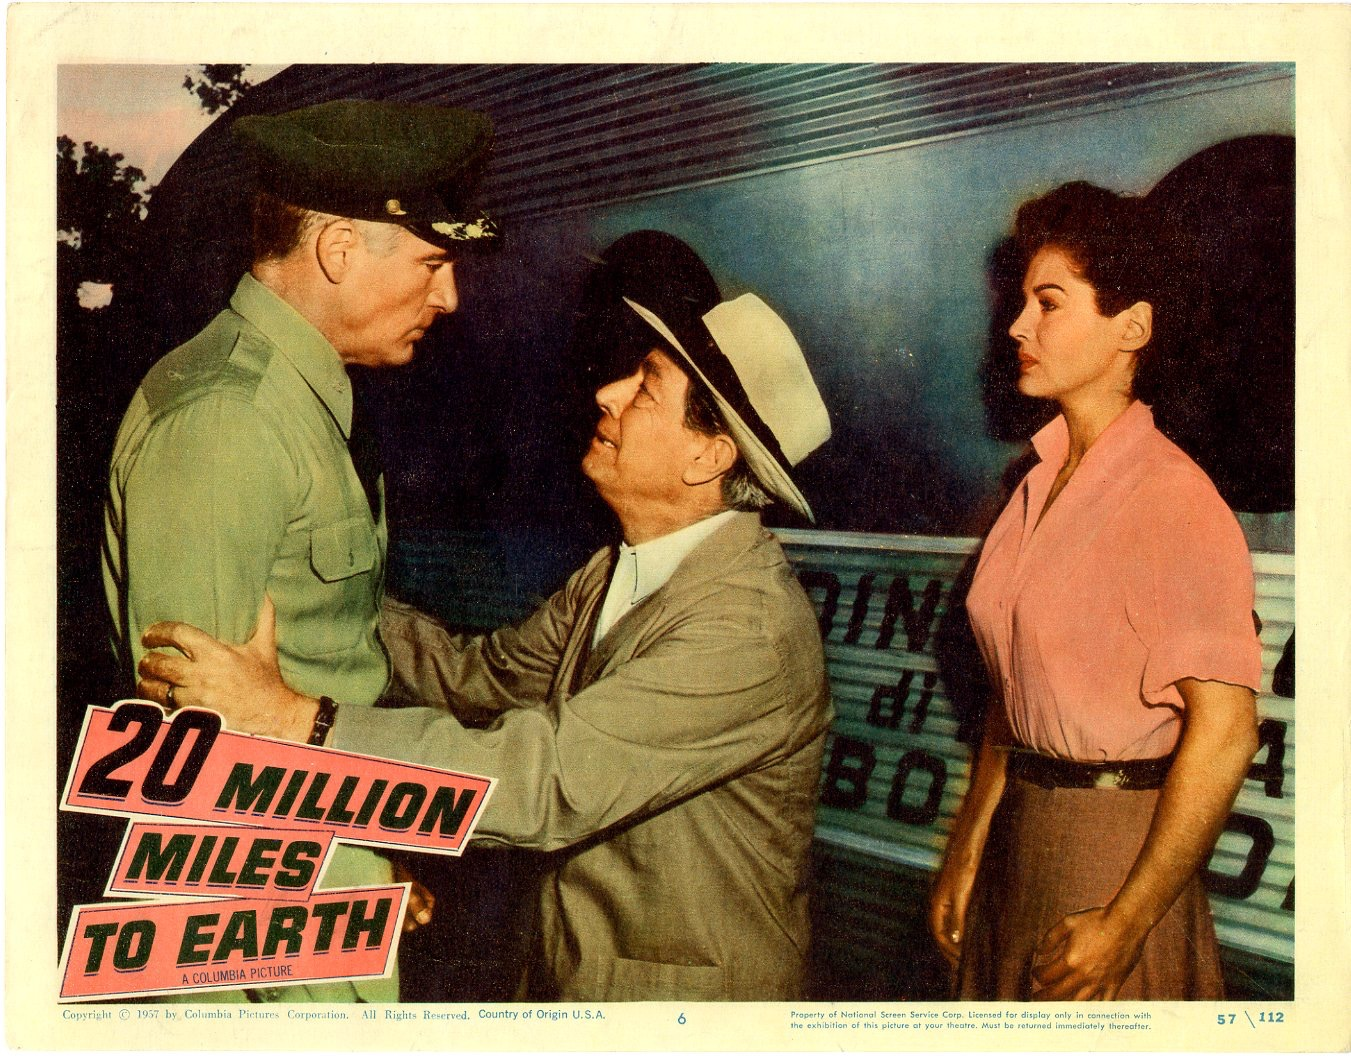 20 Million Miles To Earth 1957 - 398